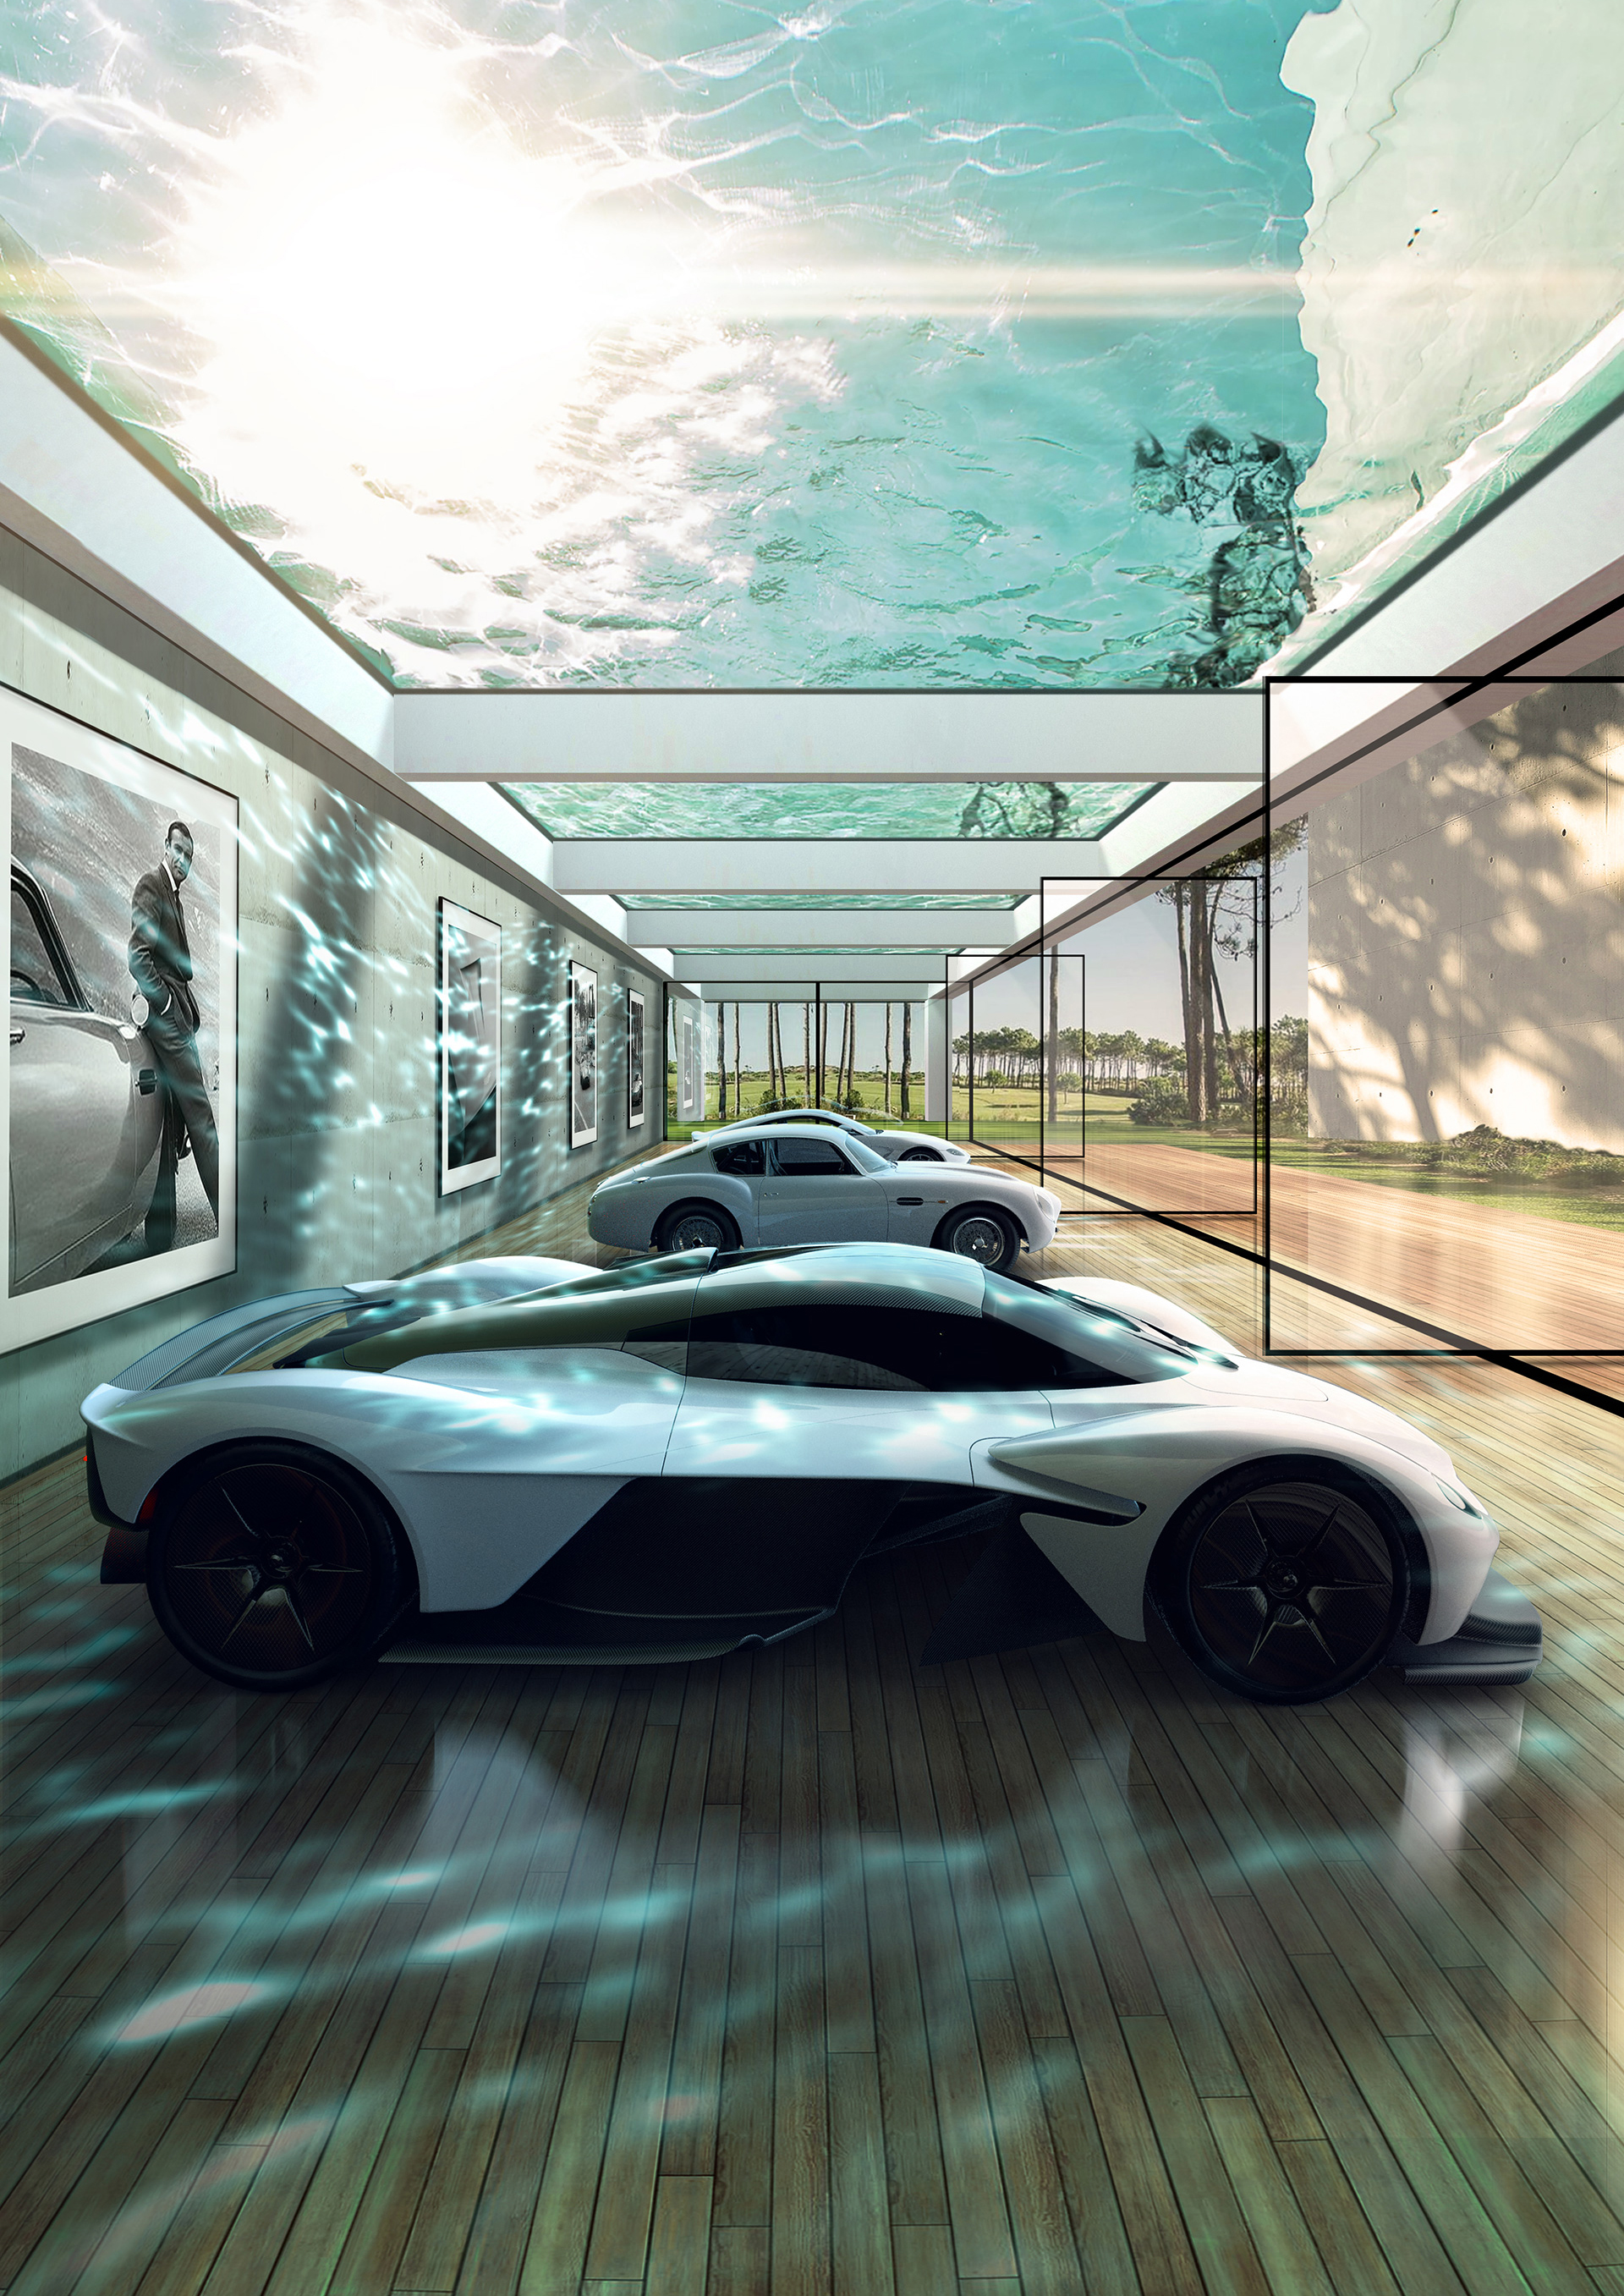 Aston Martin cars parked in an automotive gallery  | Aston Martin Automotive Galleries and Lairs| STIRworld